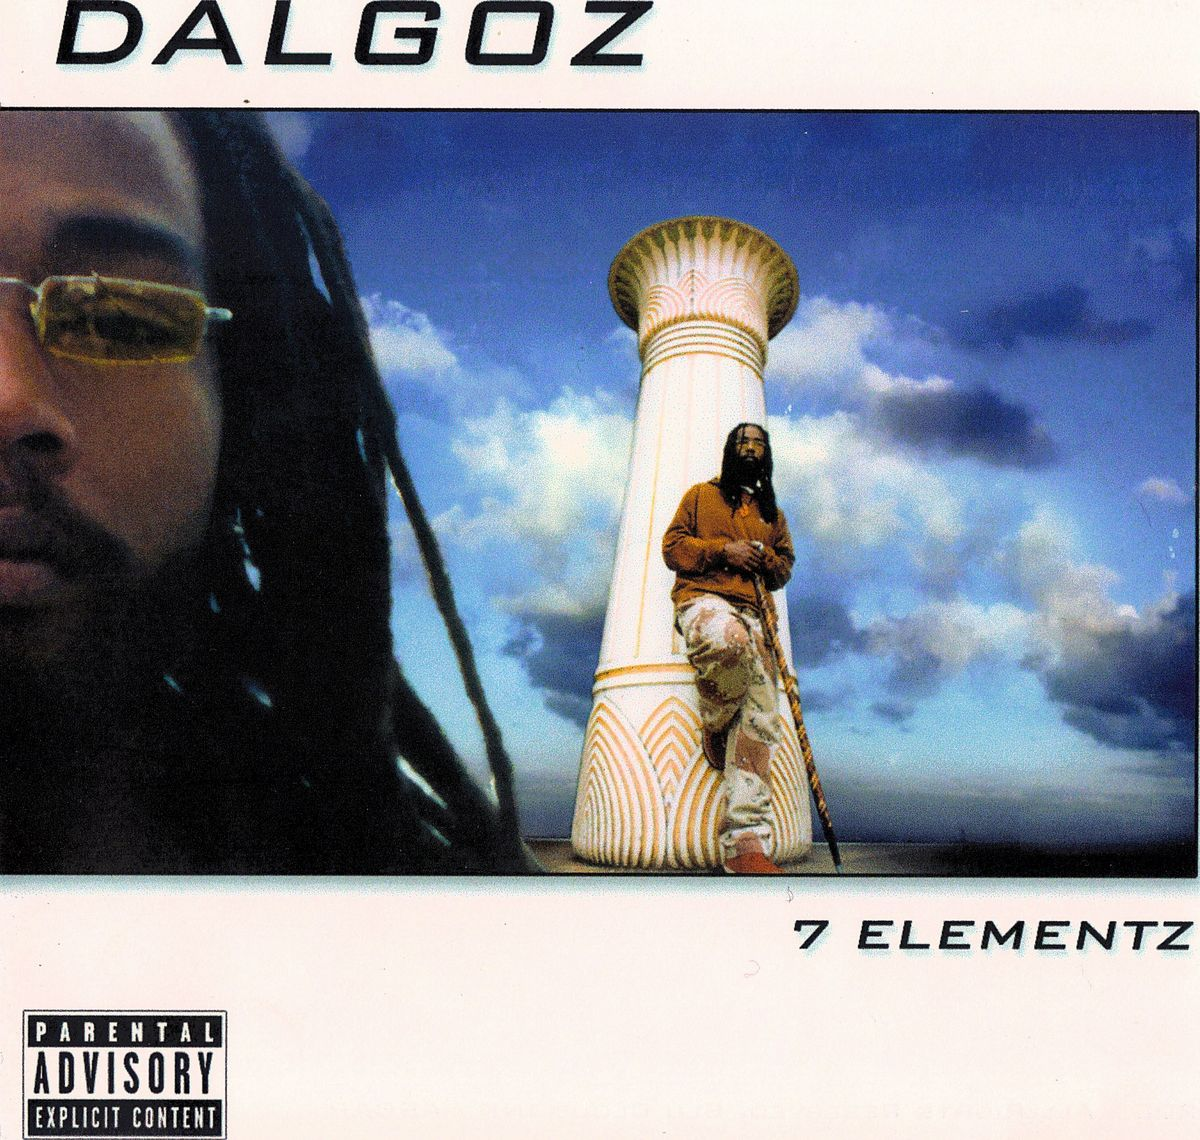 7 elementz cd cover